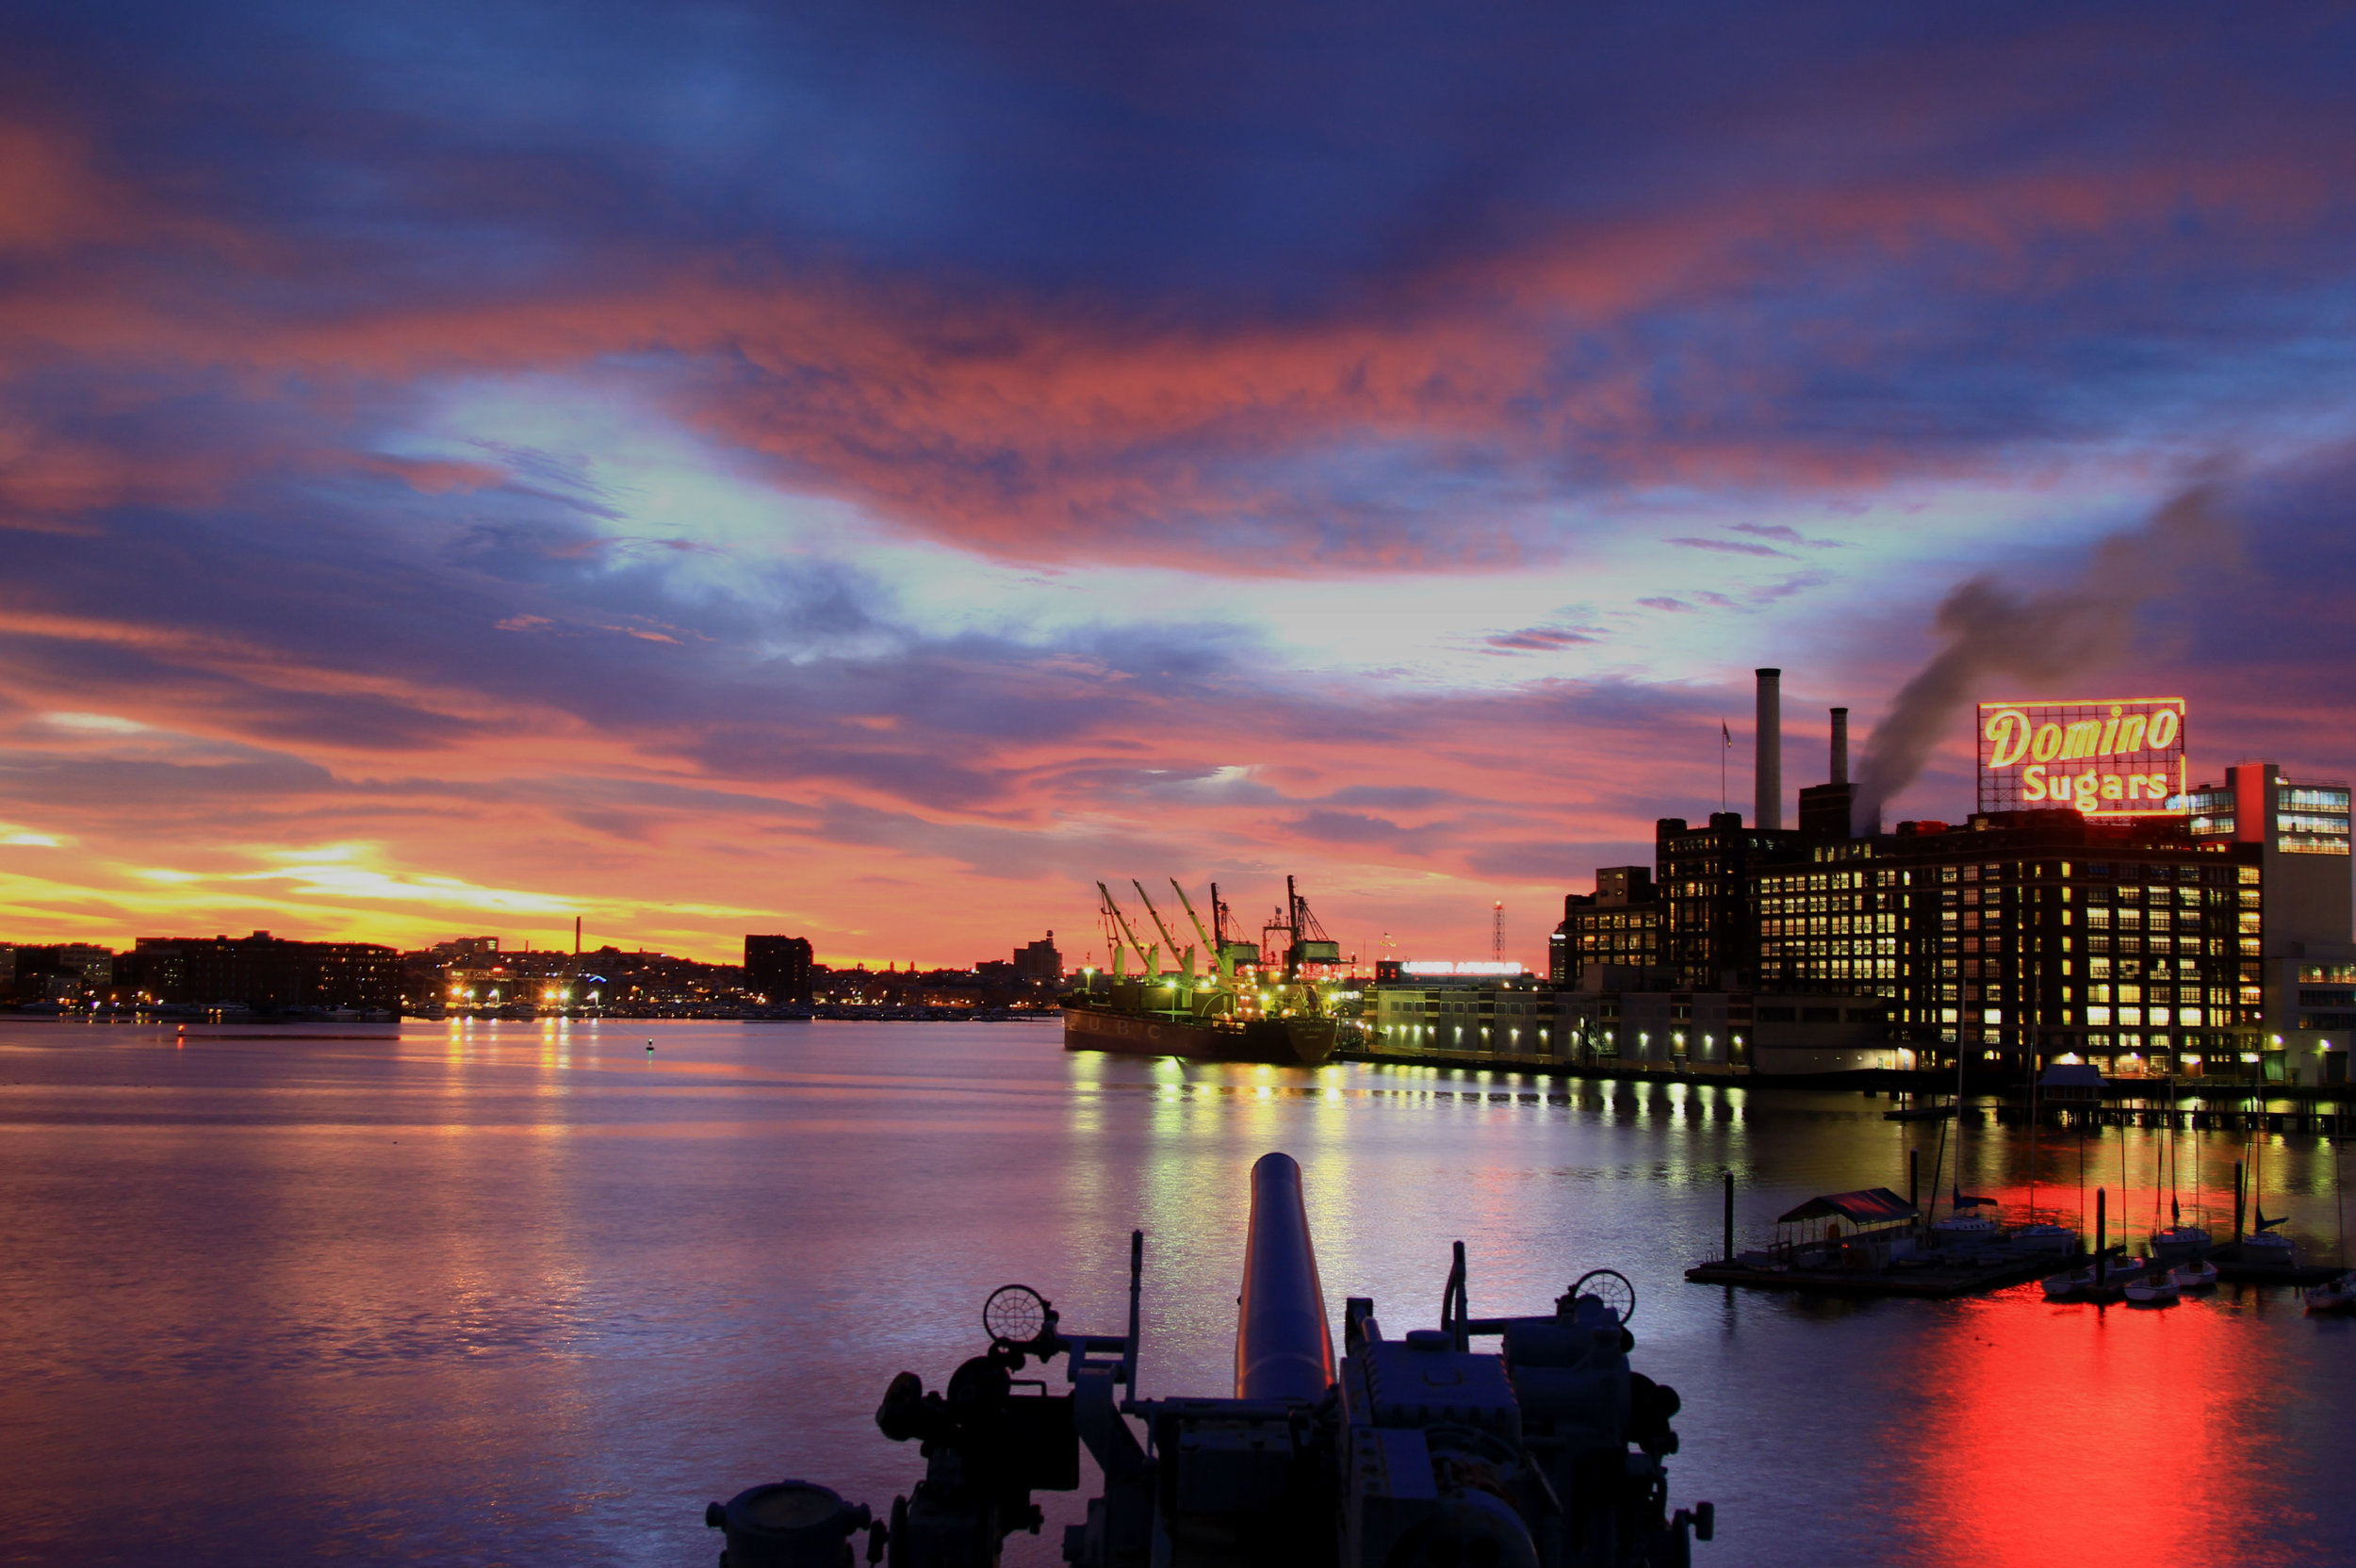 The morning of 9/27/13. We were chartered for  Baltimore'sTrawler Fest  and the ship was used for different sessions of theTrawler Fest University. Crew members sleptaboard this week and most stayed in bed and missed this light show in the sky, buta few did witness this.